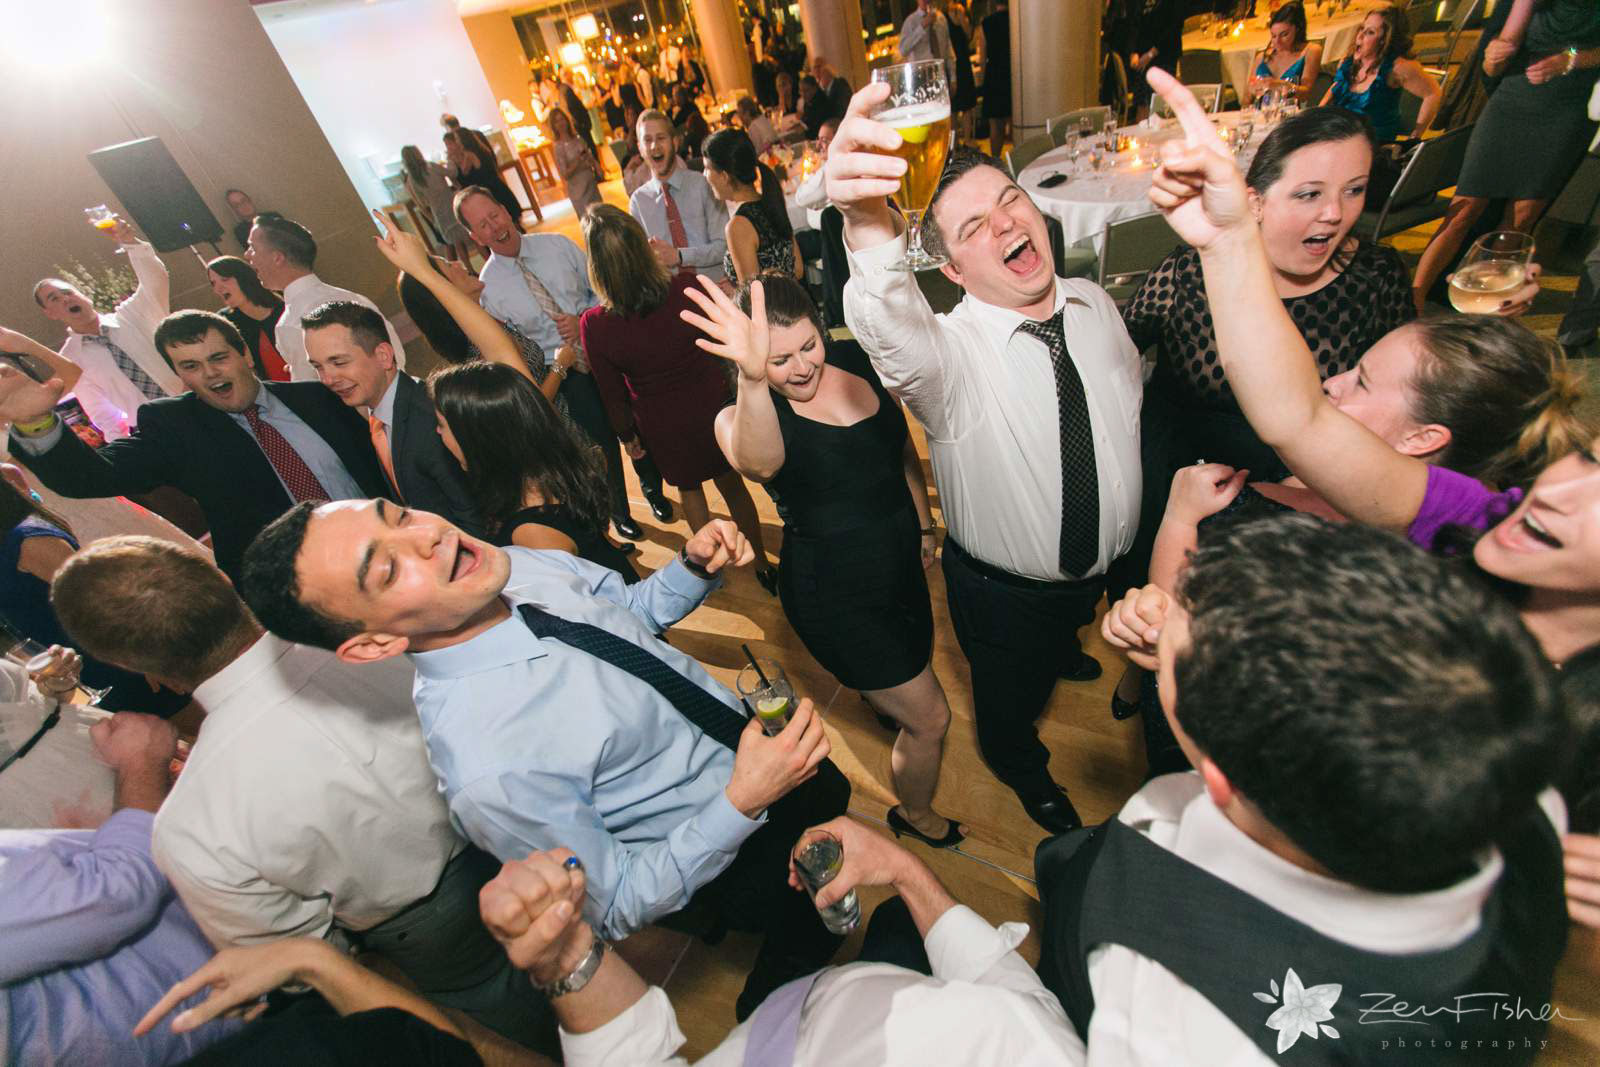 Epic shot from above of wedding guests shouting and dancing on the dance floor with lots of energy.